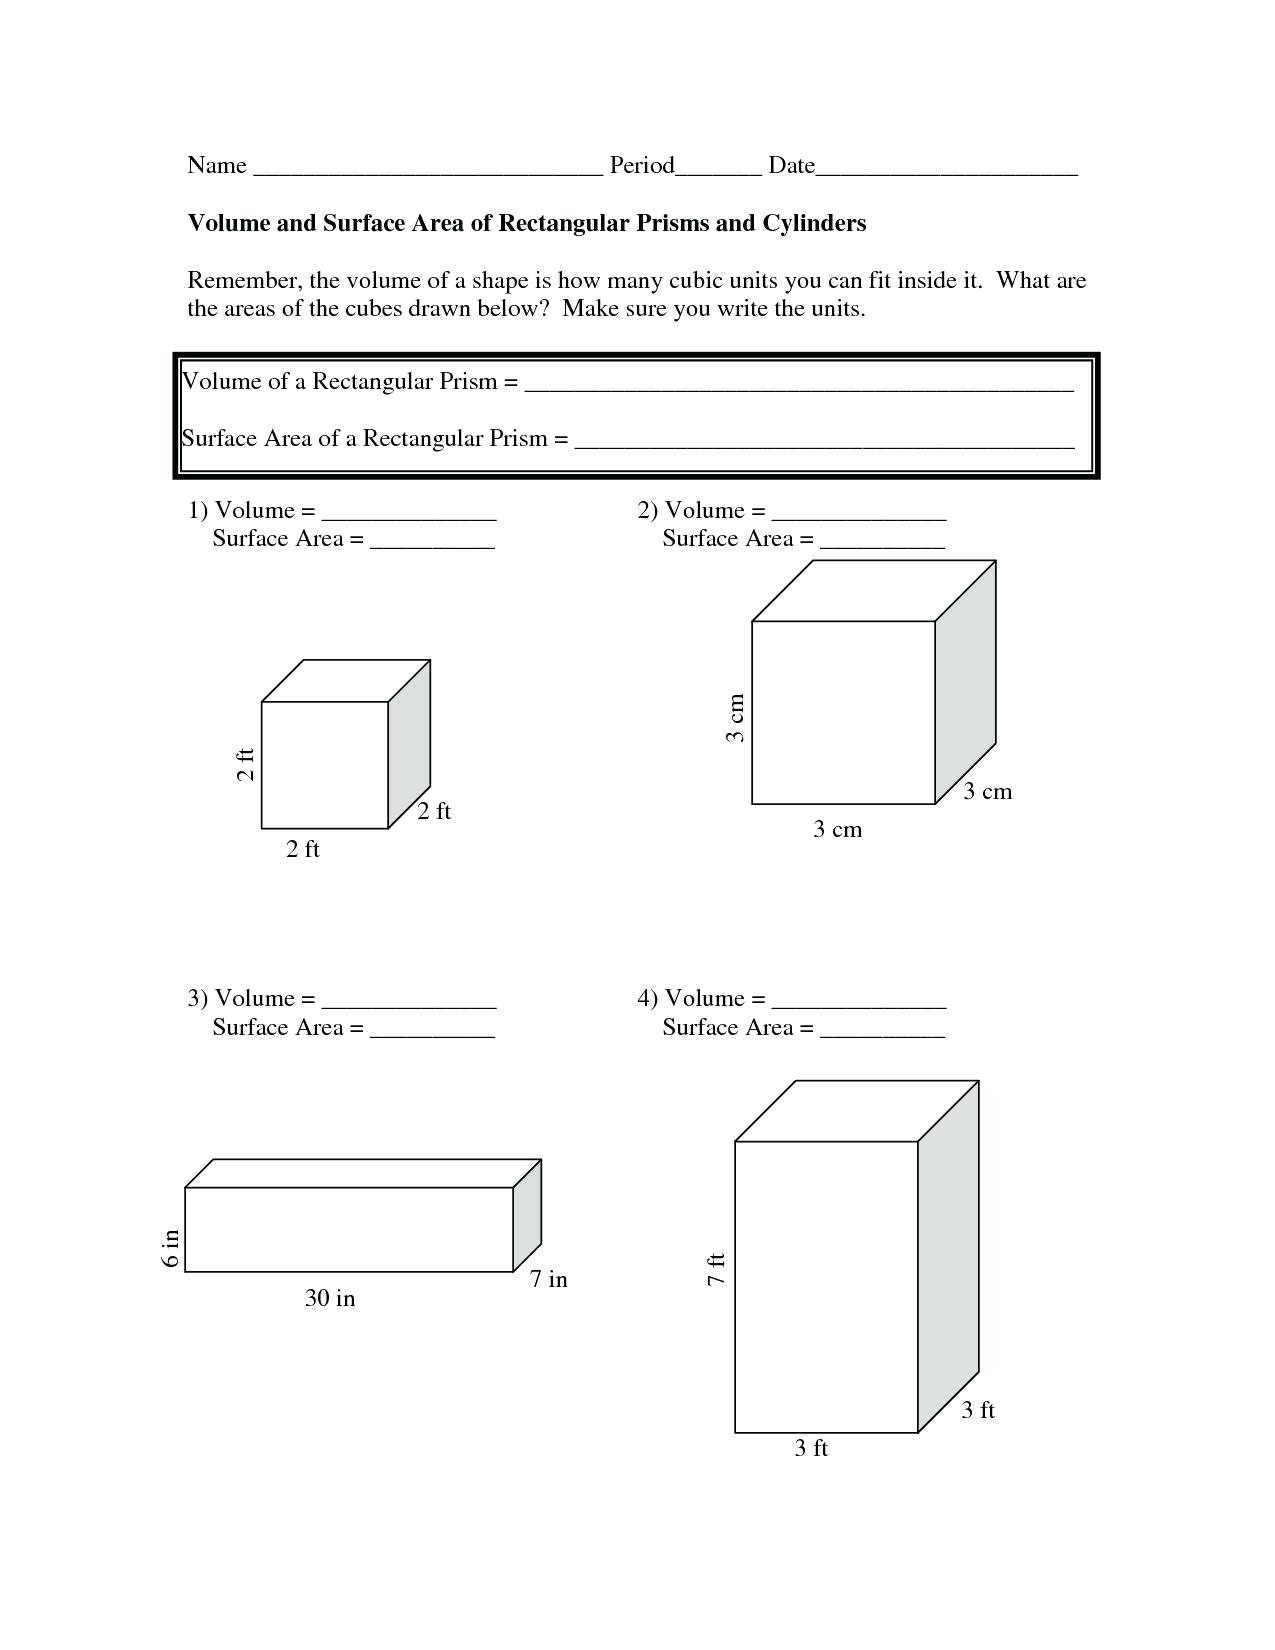 Surface Area Net Worksheet Matching Rectangular Prisms To Their Nets Intended For Volume Of Rectangular Prism Worksheet